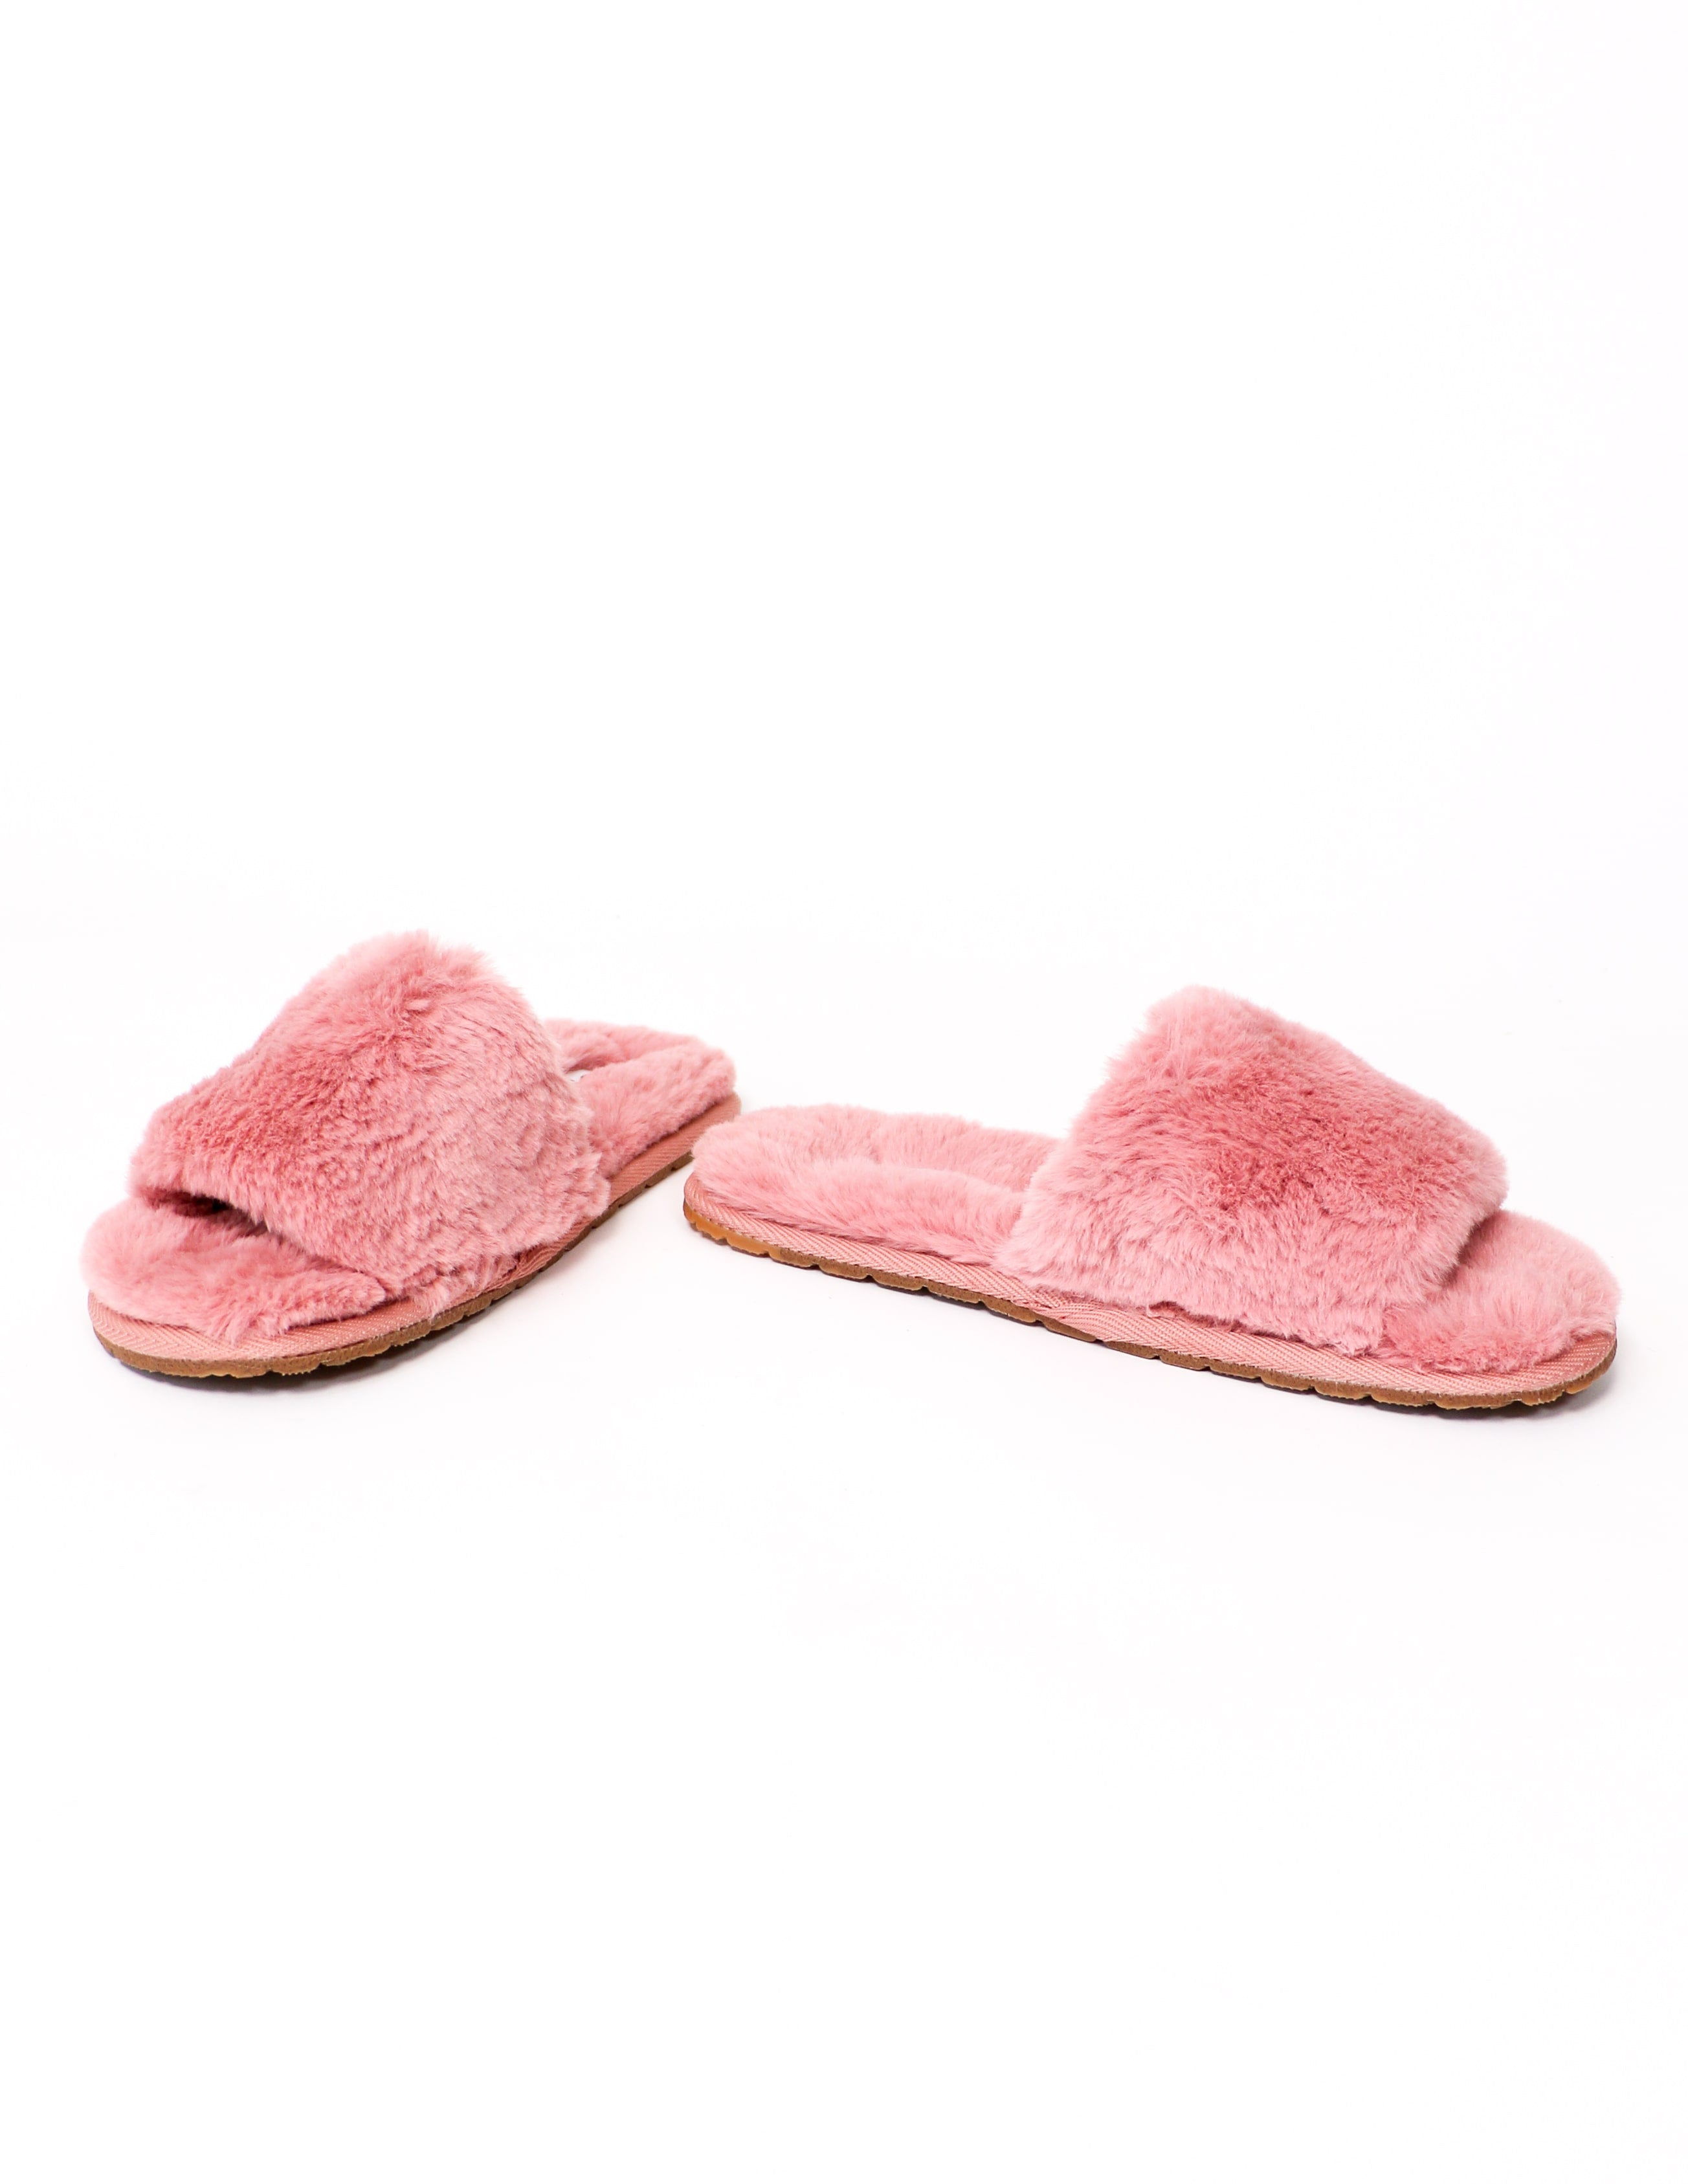 Cozy for you fur slide slippers in mauve - elle bleu shoes